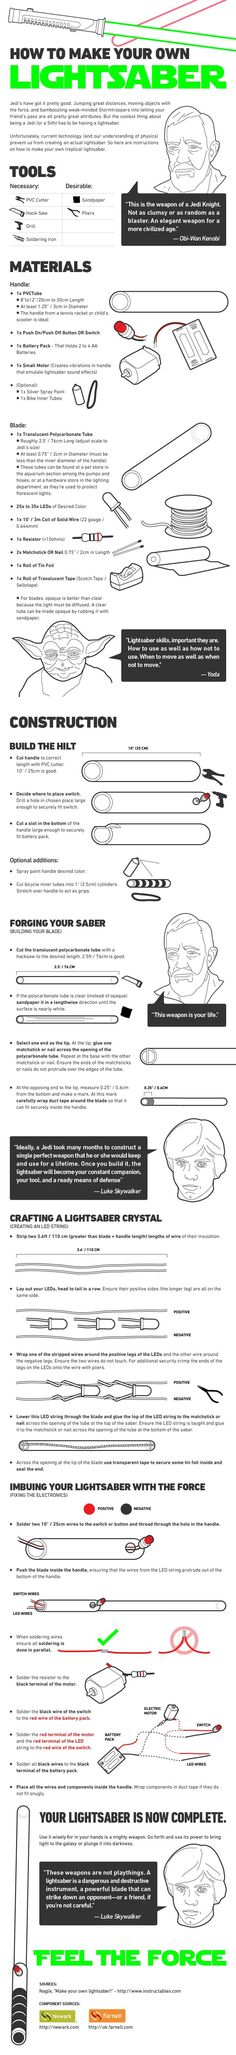 How to build your own lightsaber, this could come in handy someday. Halloween this year!!